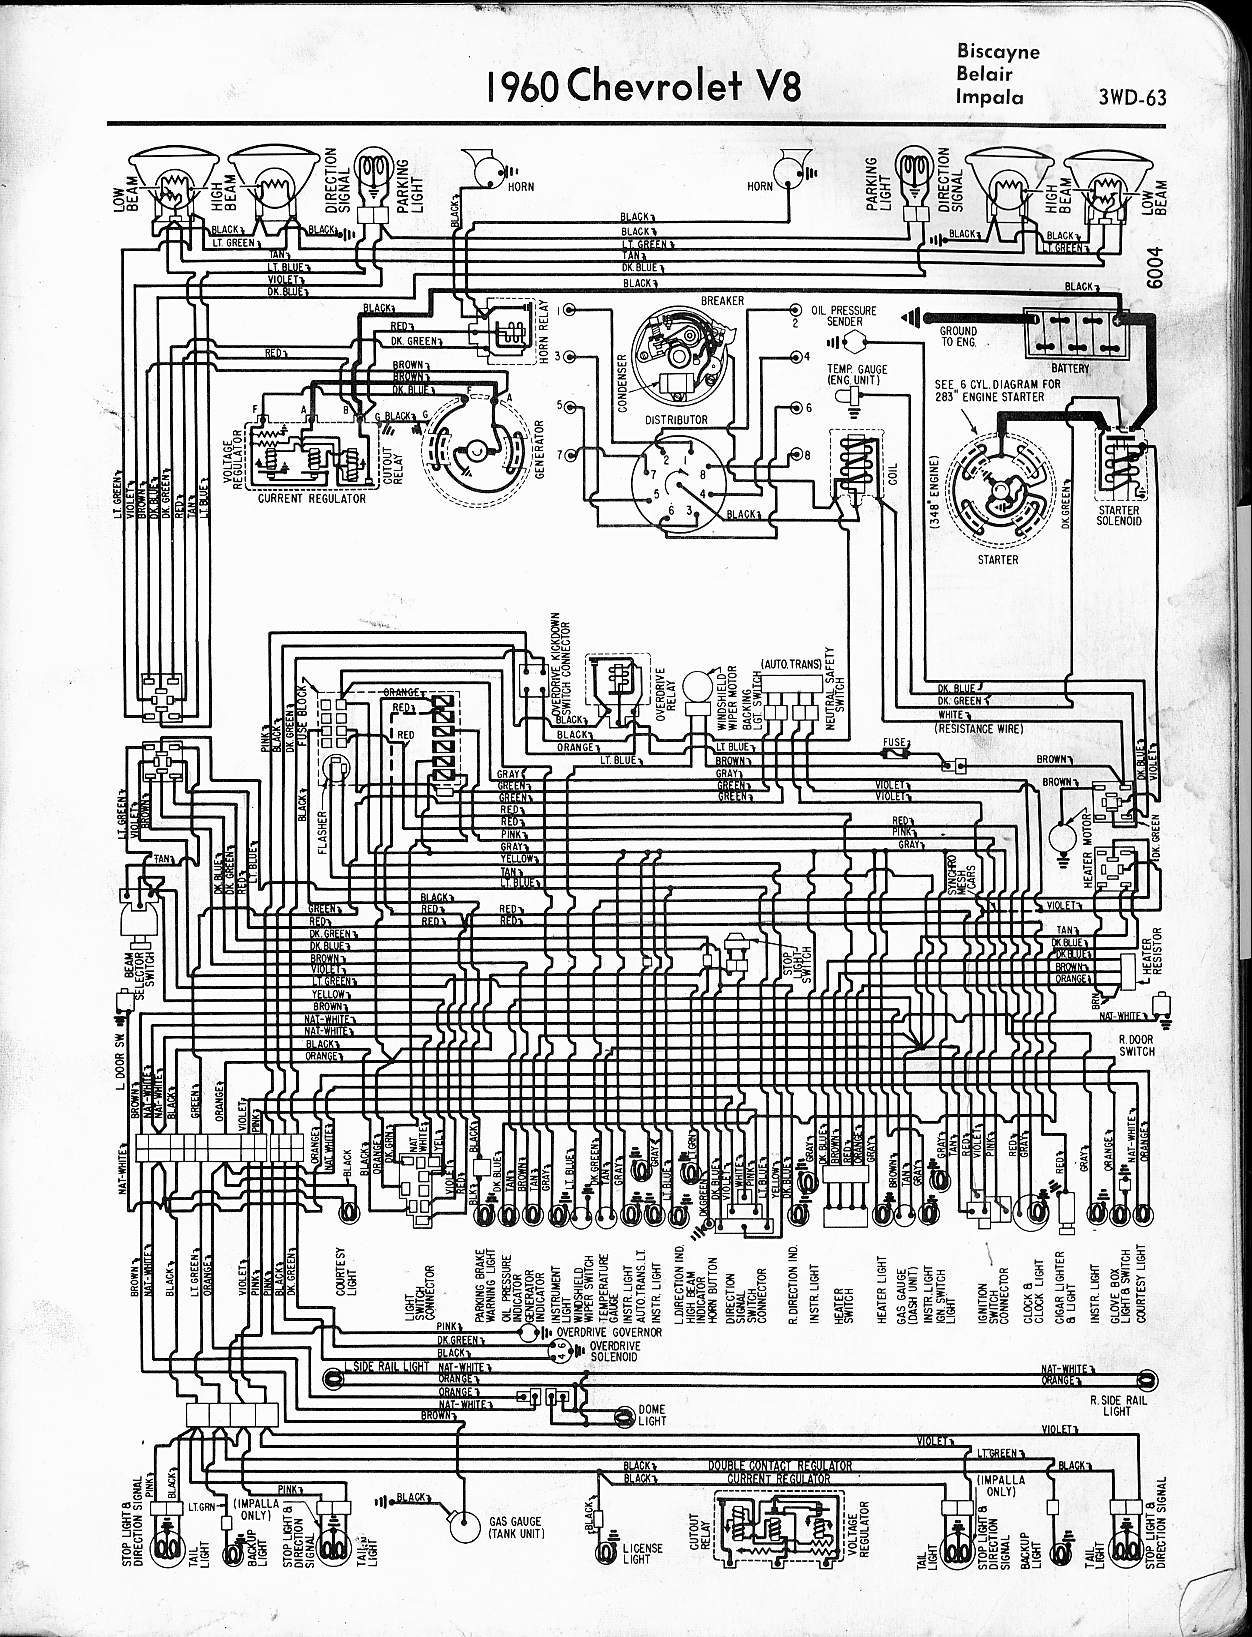 hight resolution of 1960 chevrolet wiring diagrams v8 and l6 engines 1963 impala wiring diagram wiring diagram for 1960 chevy impala